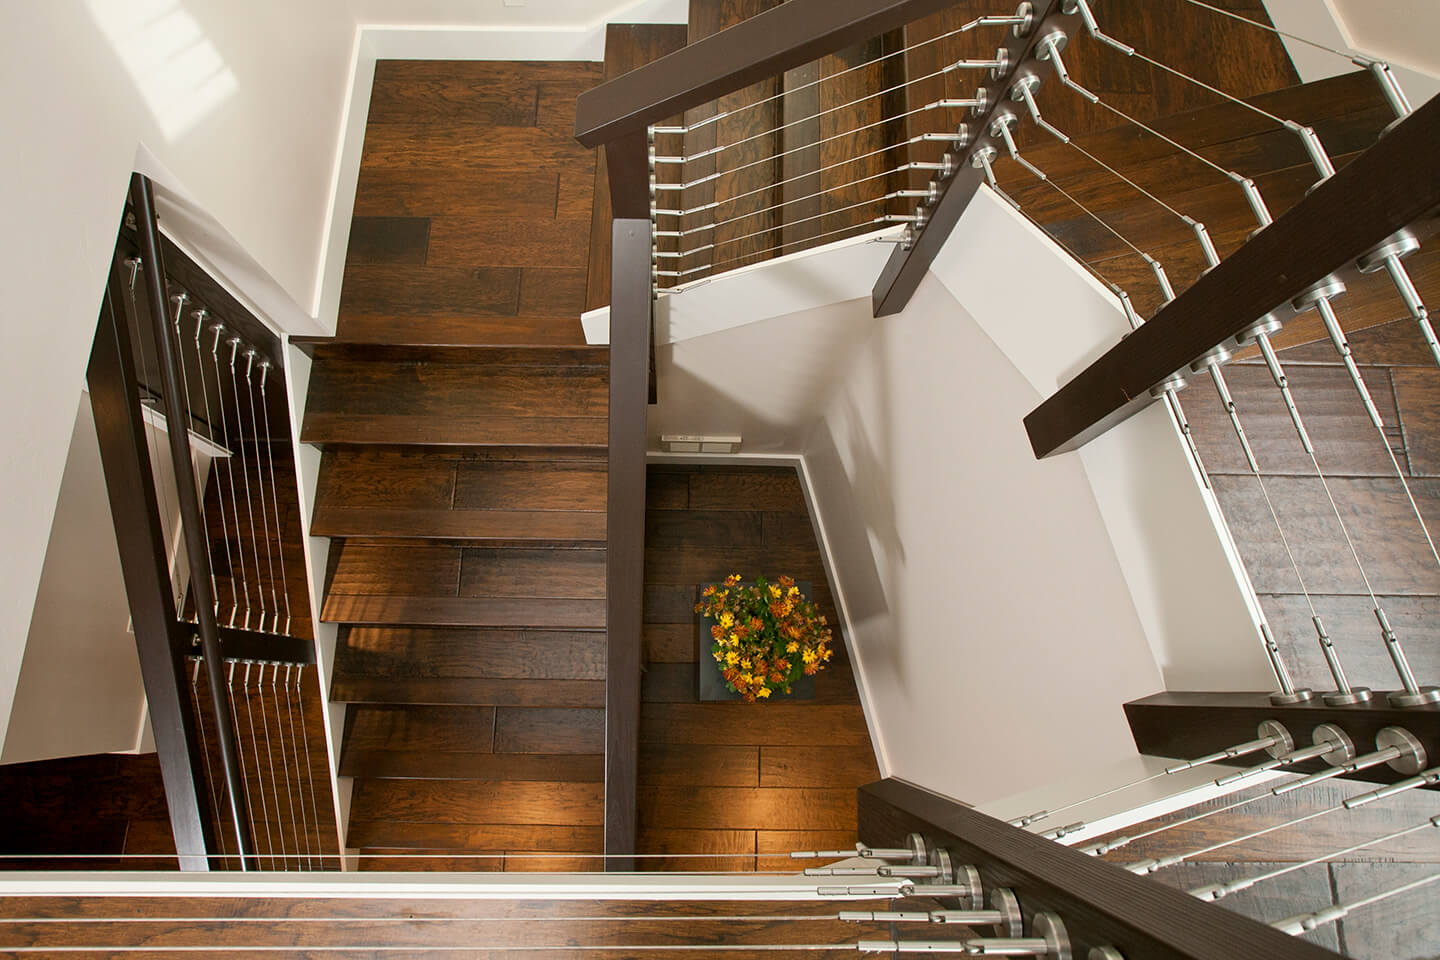 Custom-designed staircase with steel cables